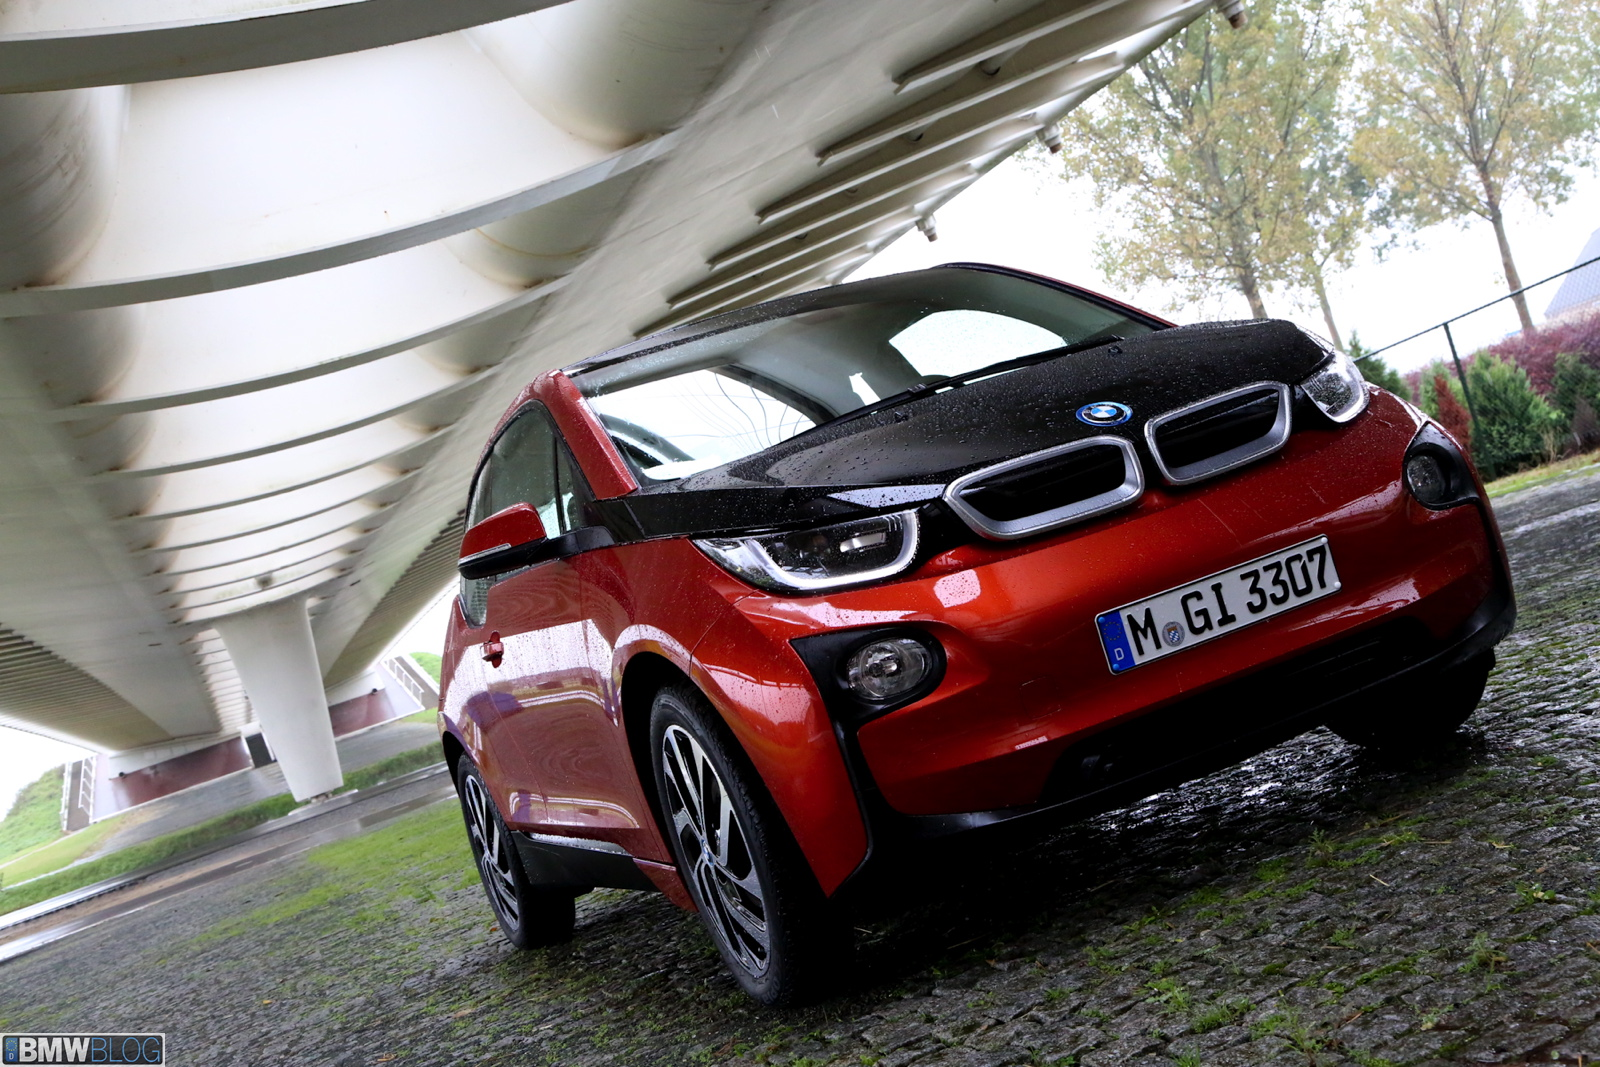 BMW i3 review Shawn Molnar BMWBLOG 501